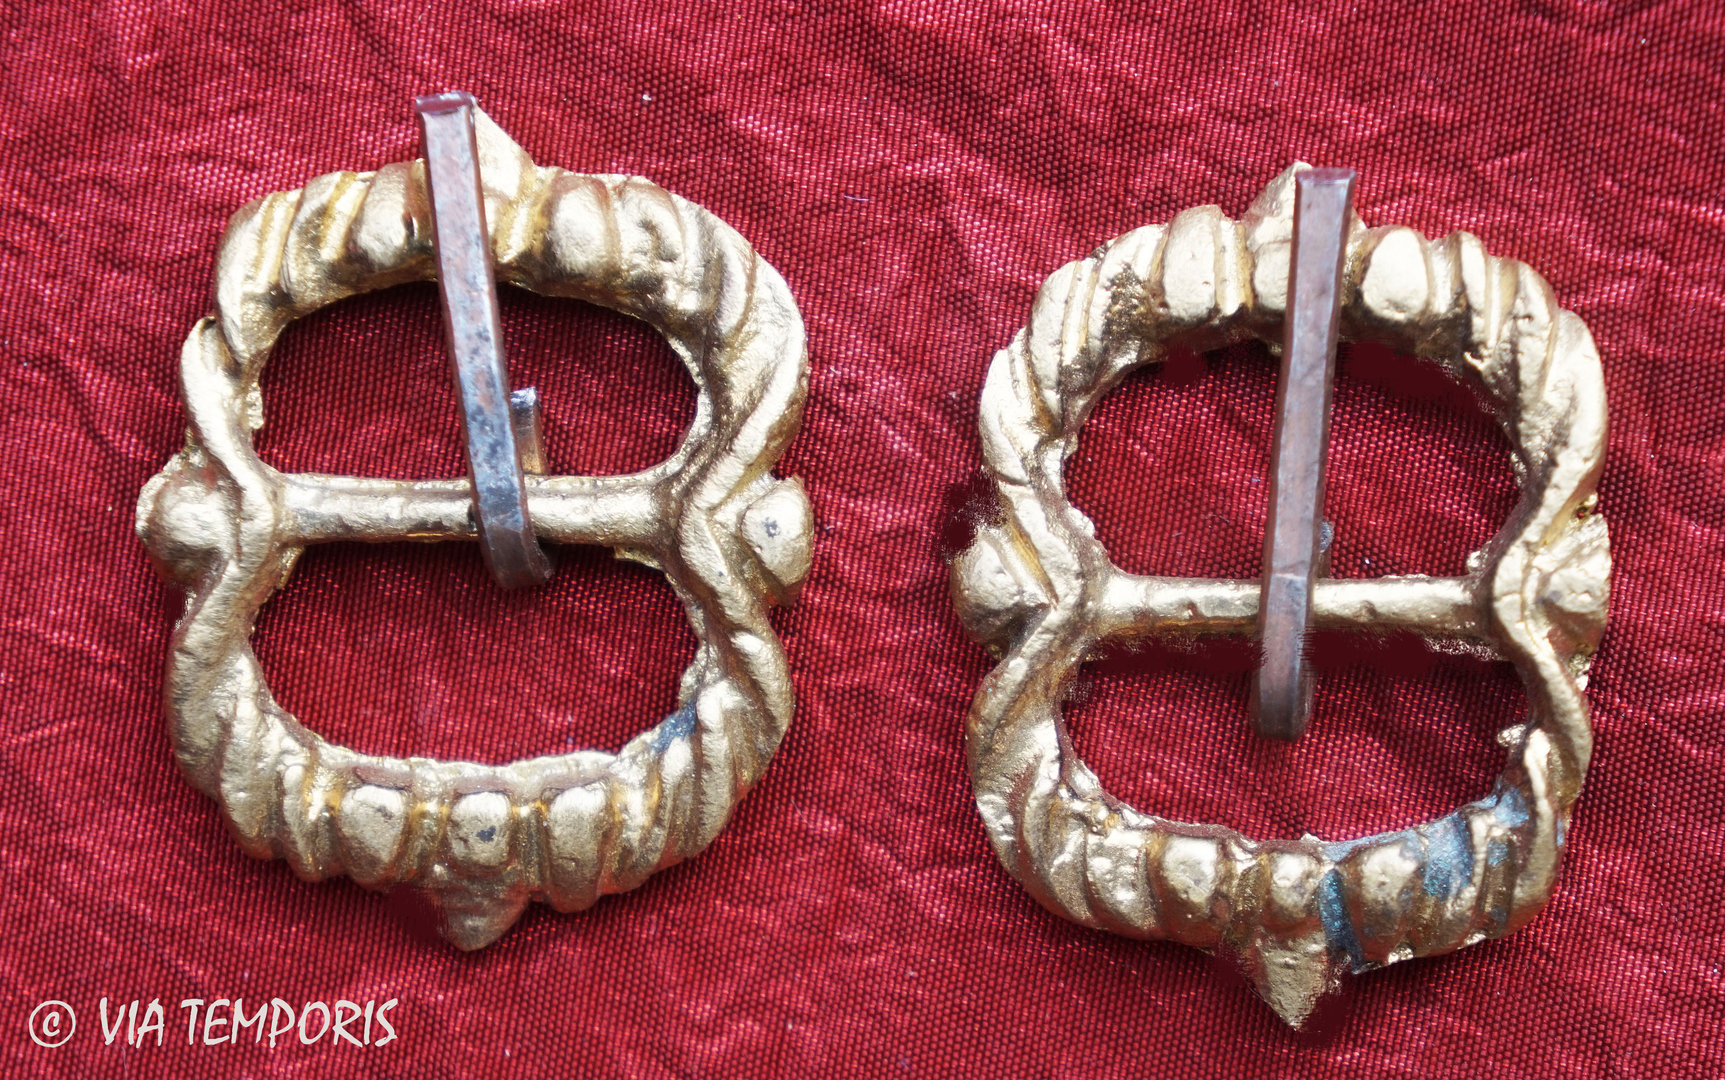 SET OF 2 MEDIEVAL BELT BUCKLES (MK II)